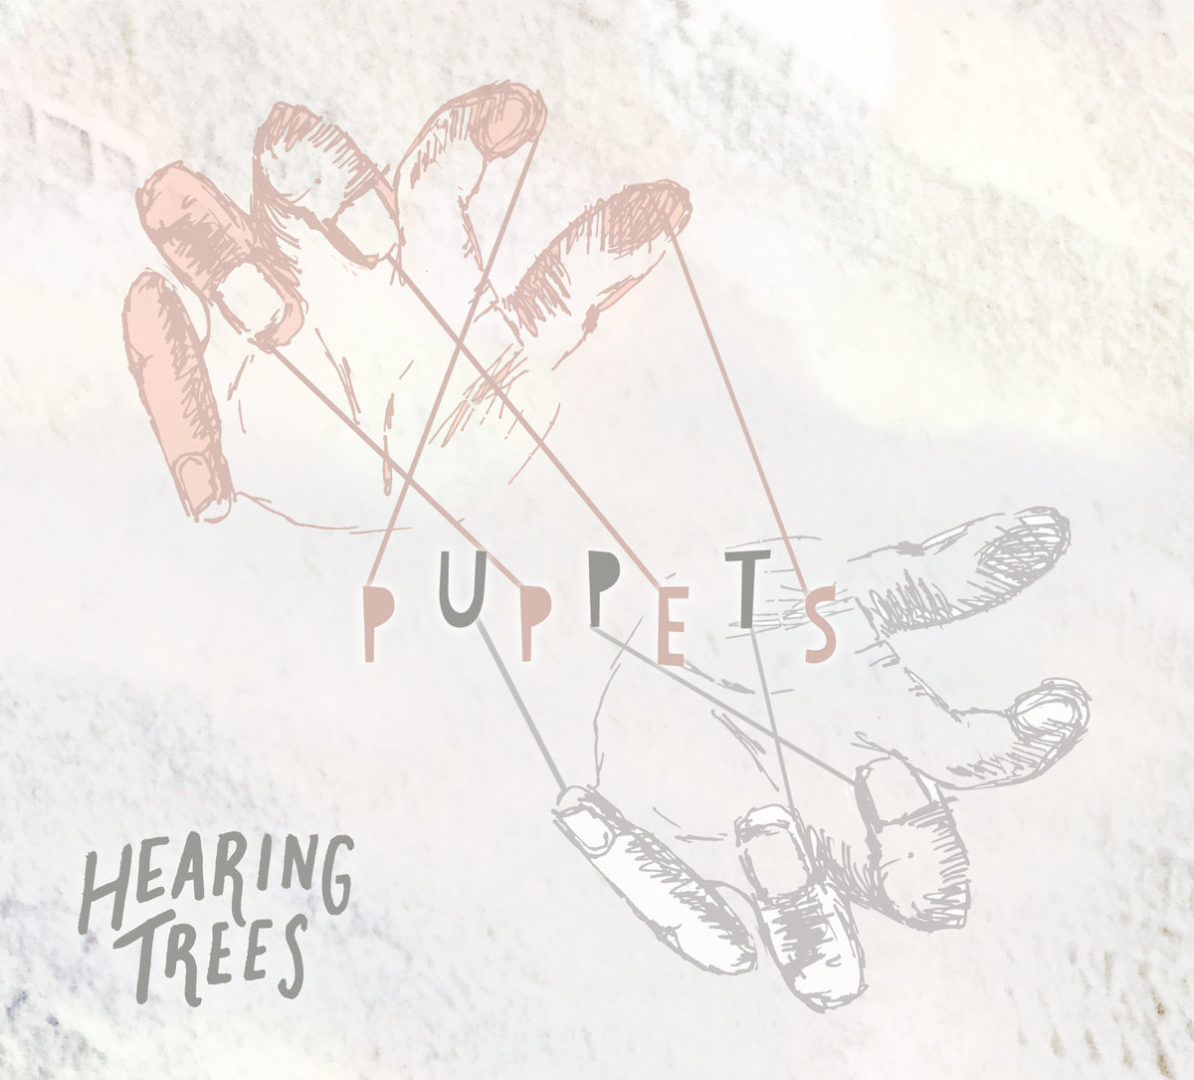 Review - Hearing Trees